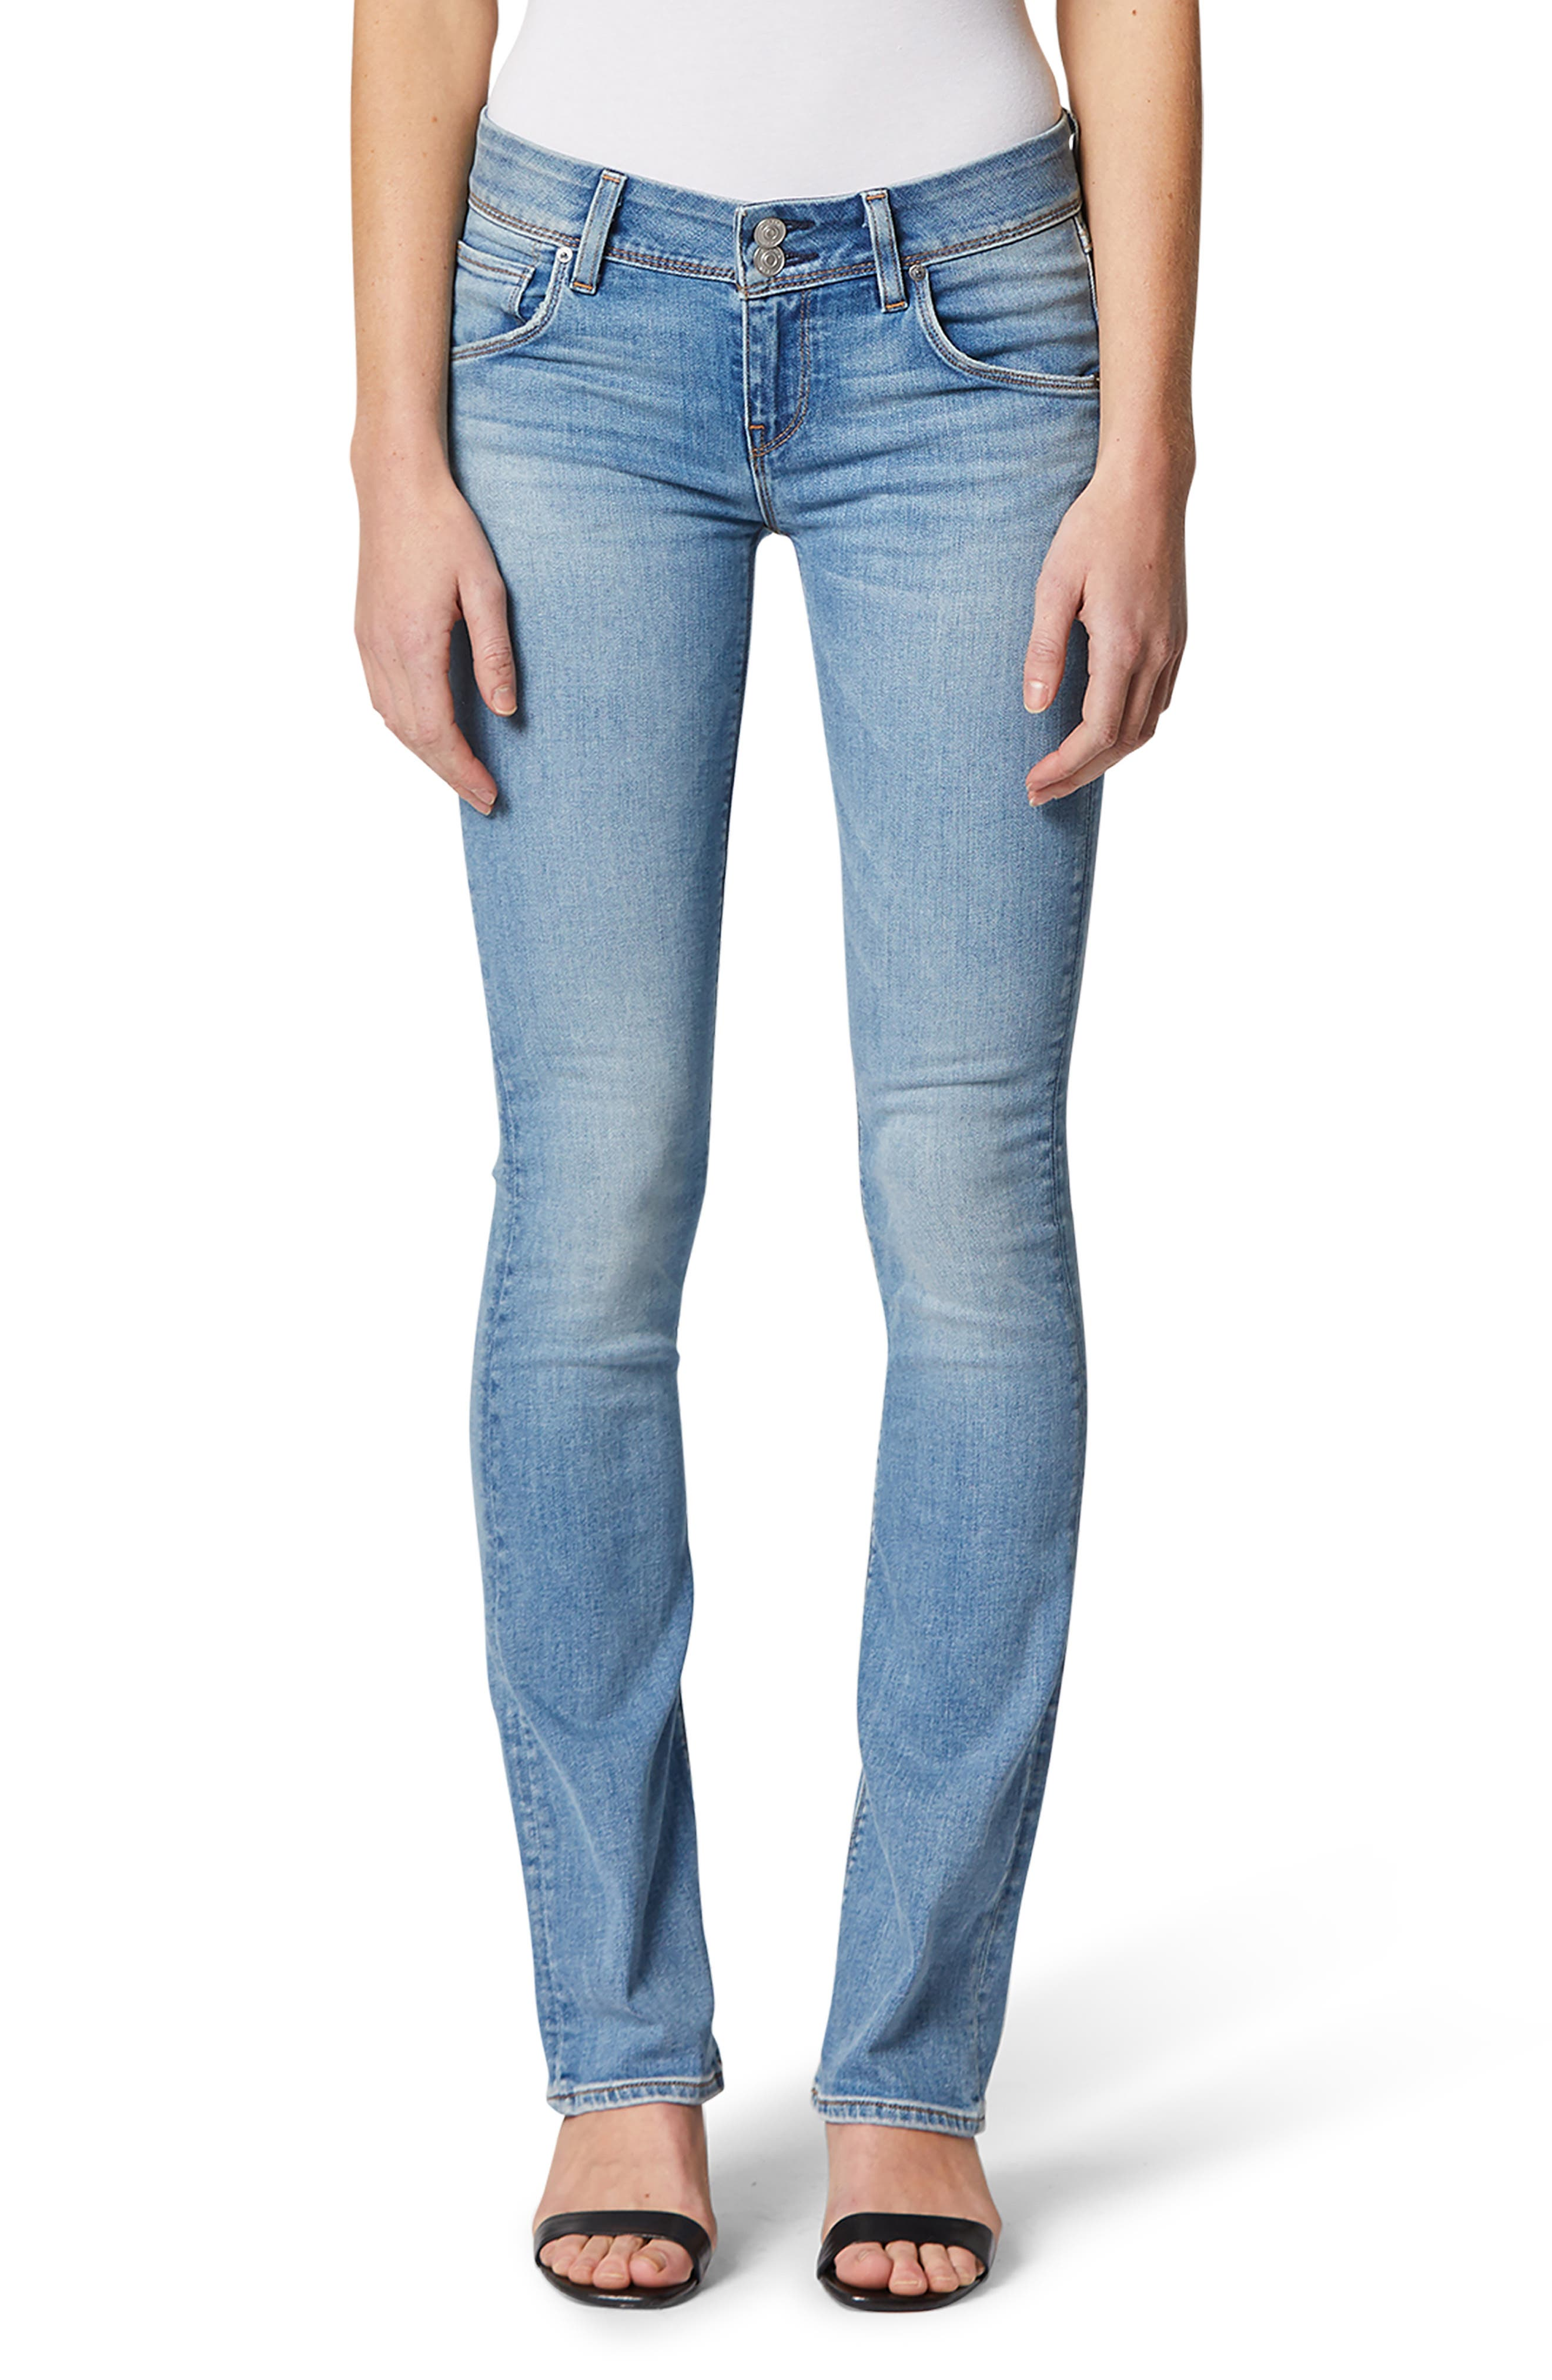 Tailored with stretch for comfort, these mid-rise bootcut jeans hug your curves and feature a light, slightly faded wash. Style Name: Hudson Jeans Beth Midrise Baby Bootcut Jeans (Outplay). Style Number: 6011105. Available in stores.